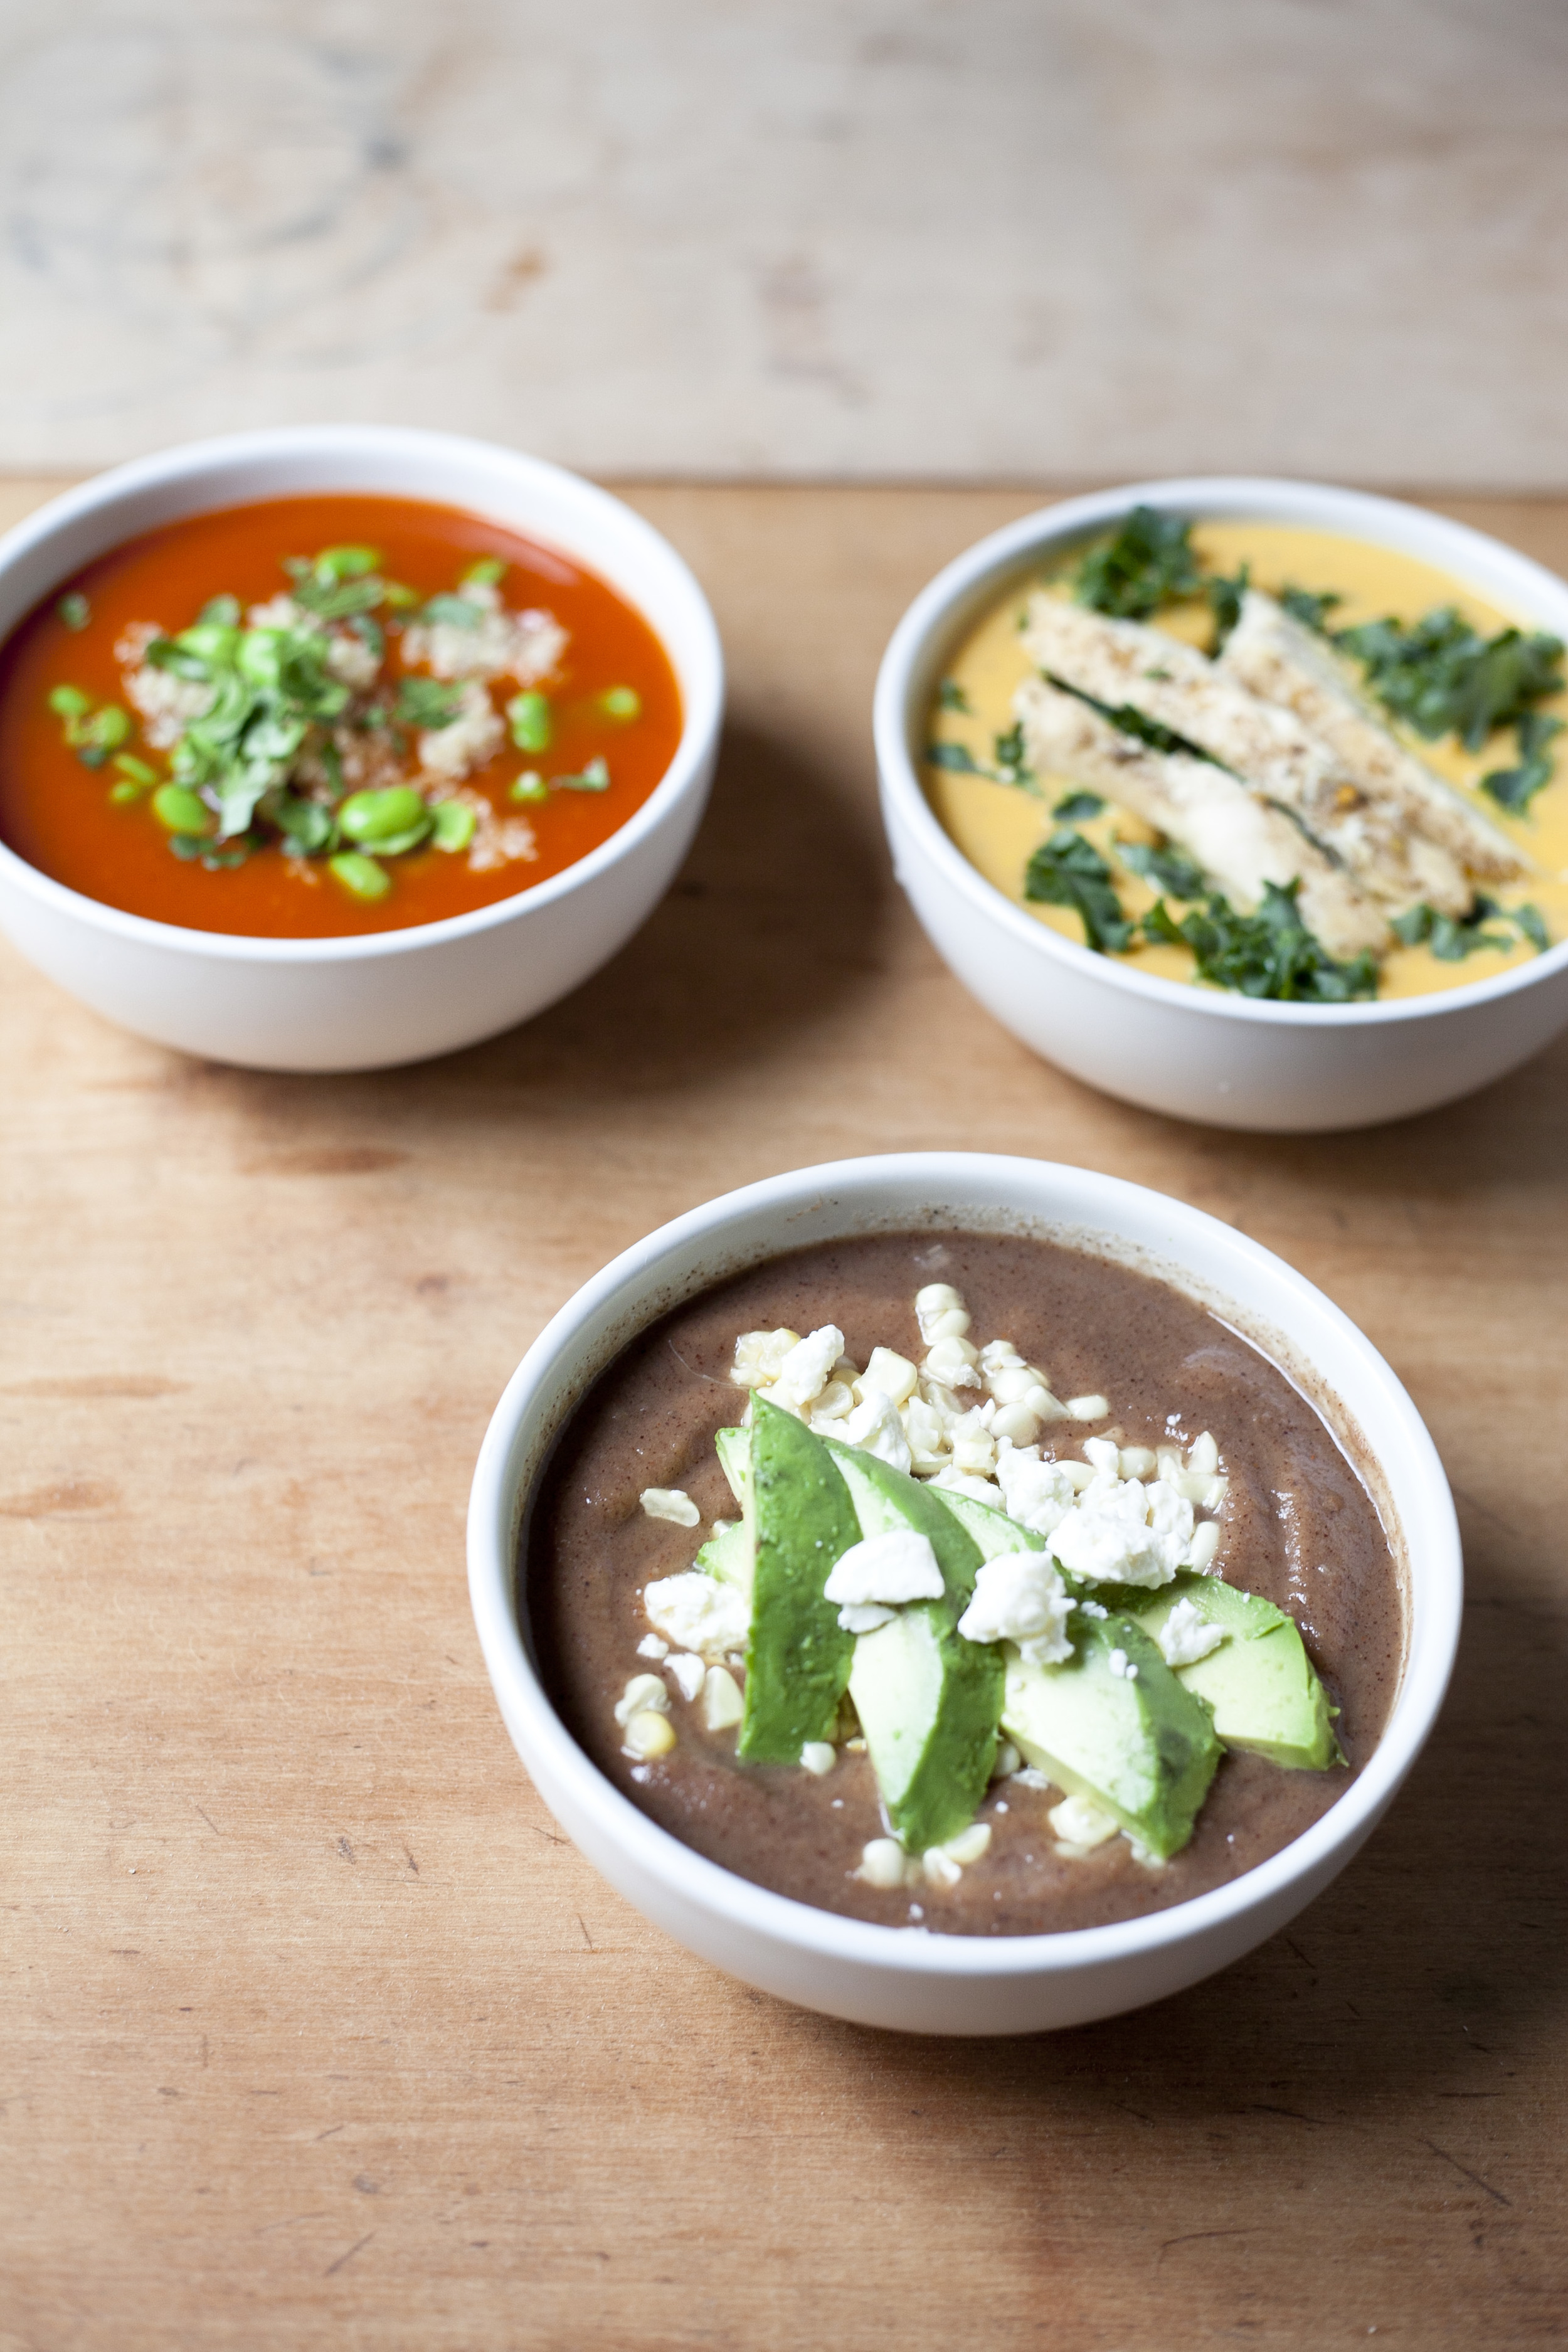 Healthy Easy Dinners: 3 Soups 3 Ways